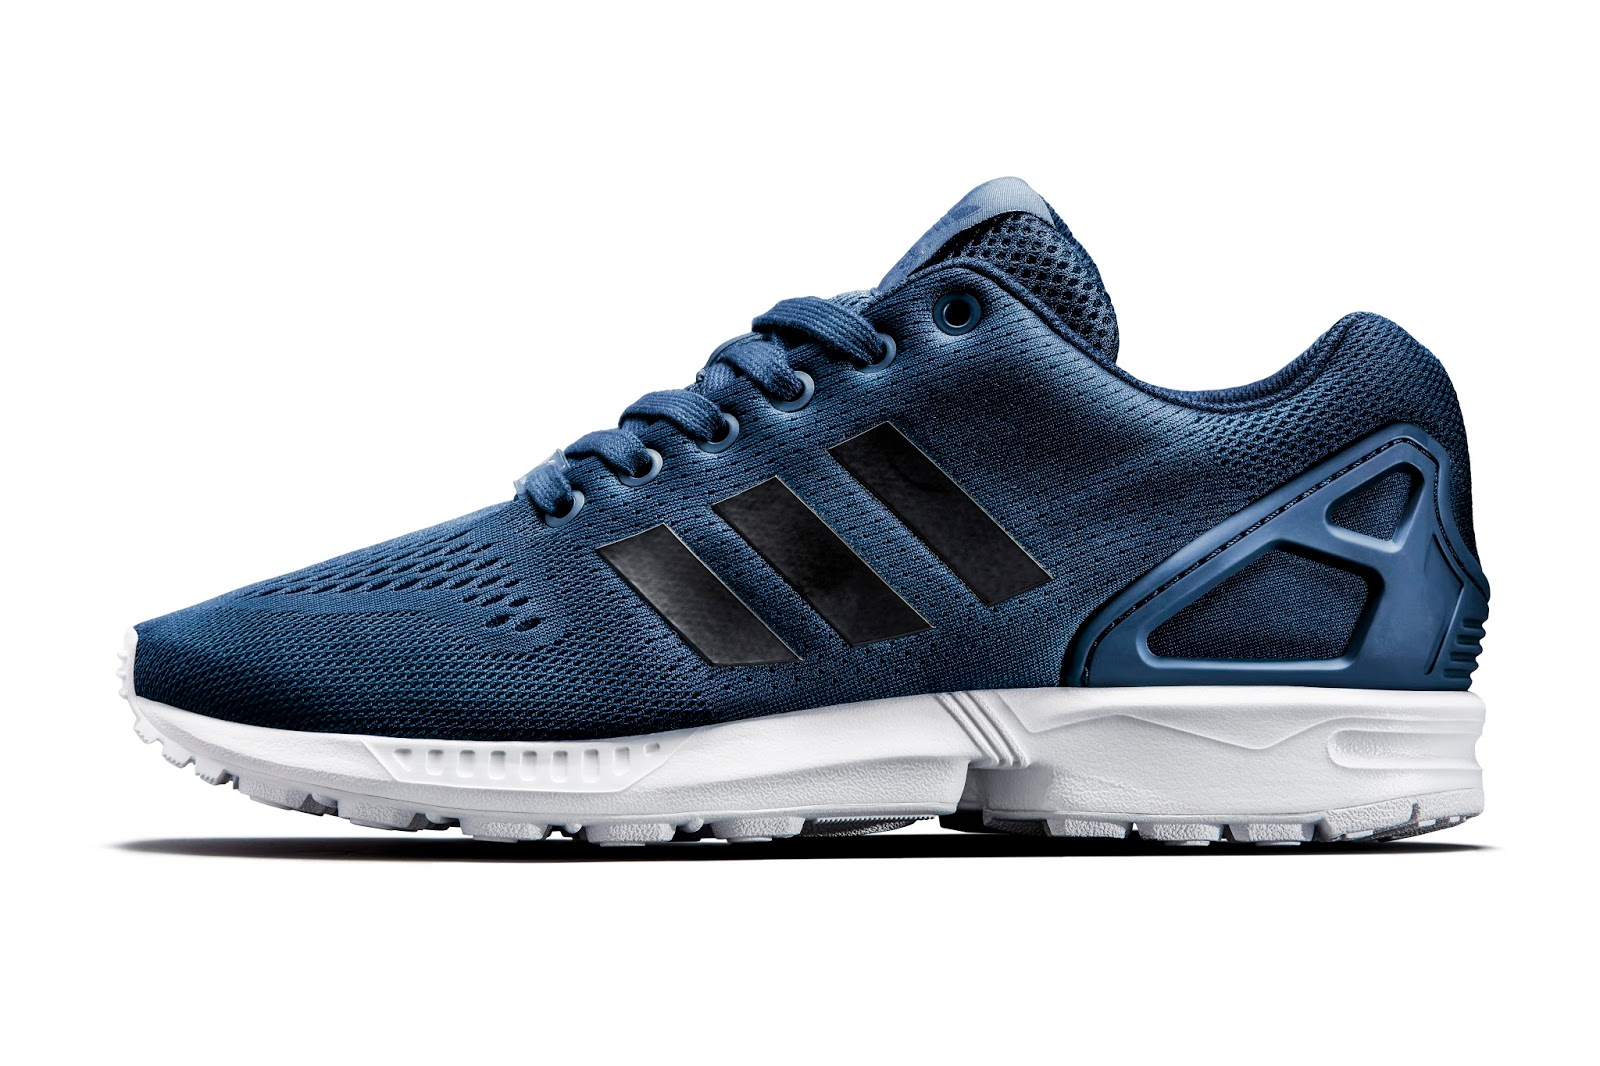 The legendary 3-Stripes logo on side and the coarse mesh pattern make this  exclusive adidas ZX Flux special.